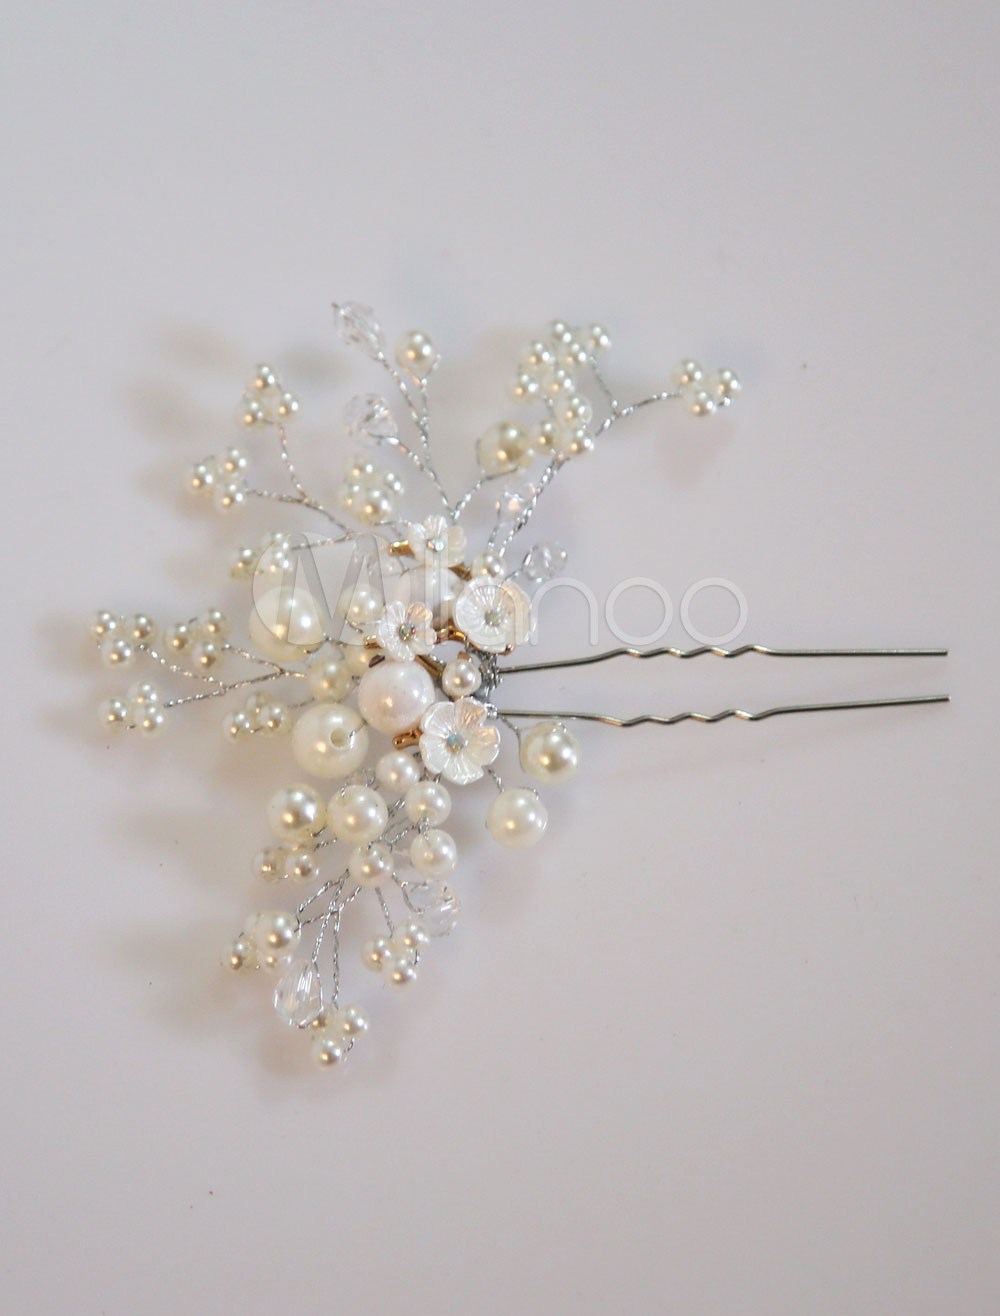 Buy Pearl Wedding Headpieces Vintage Hair Pin Ivory Flowers Bridal Hair Accessories for $7.99 in Milanoo store